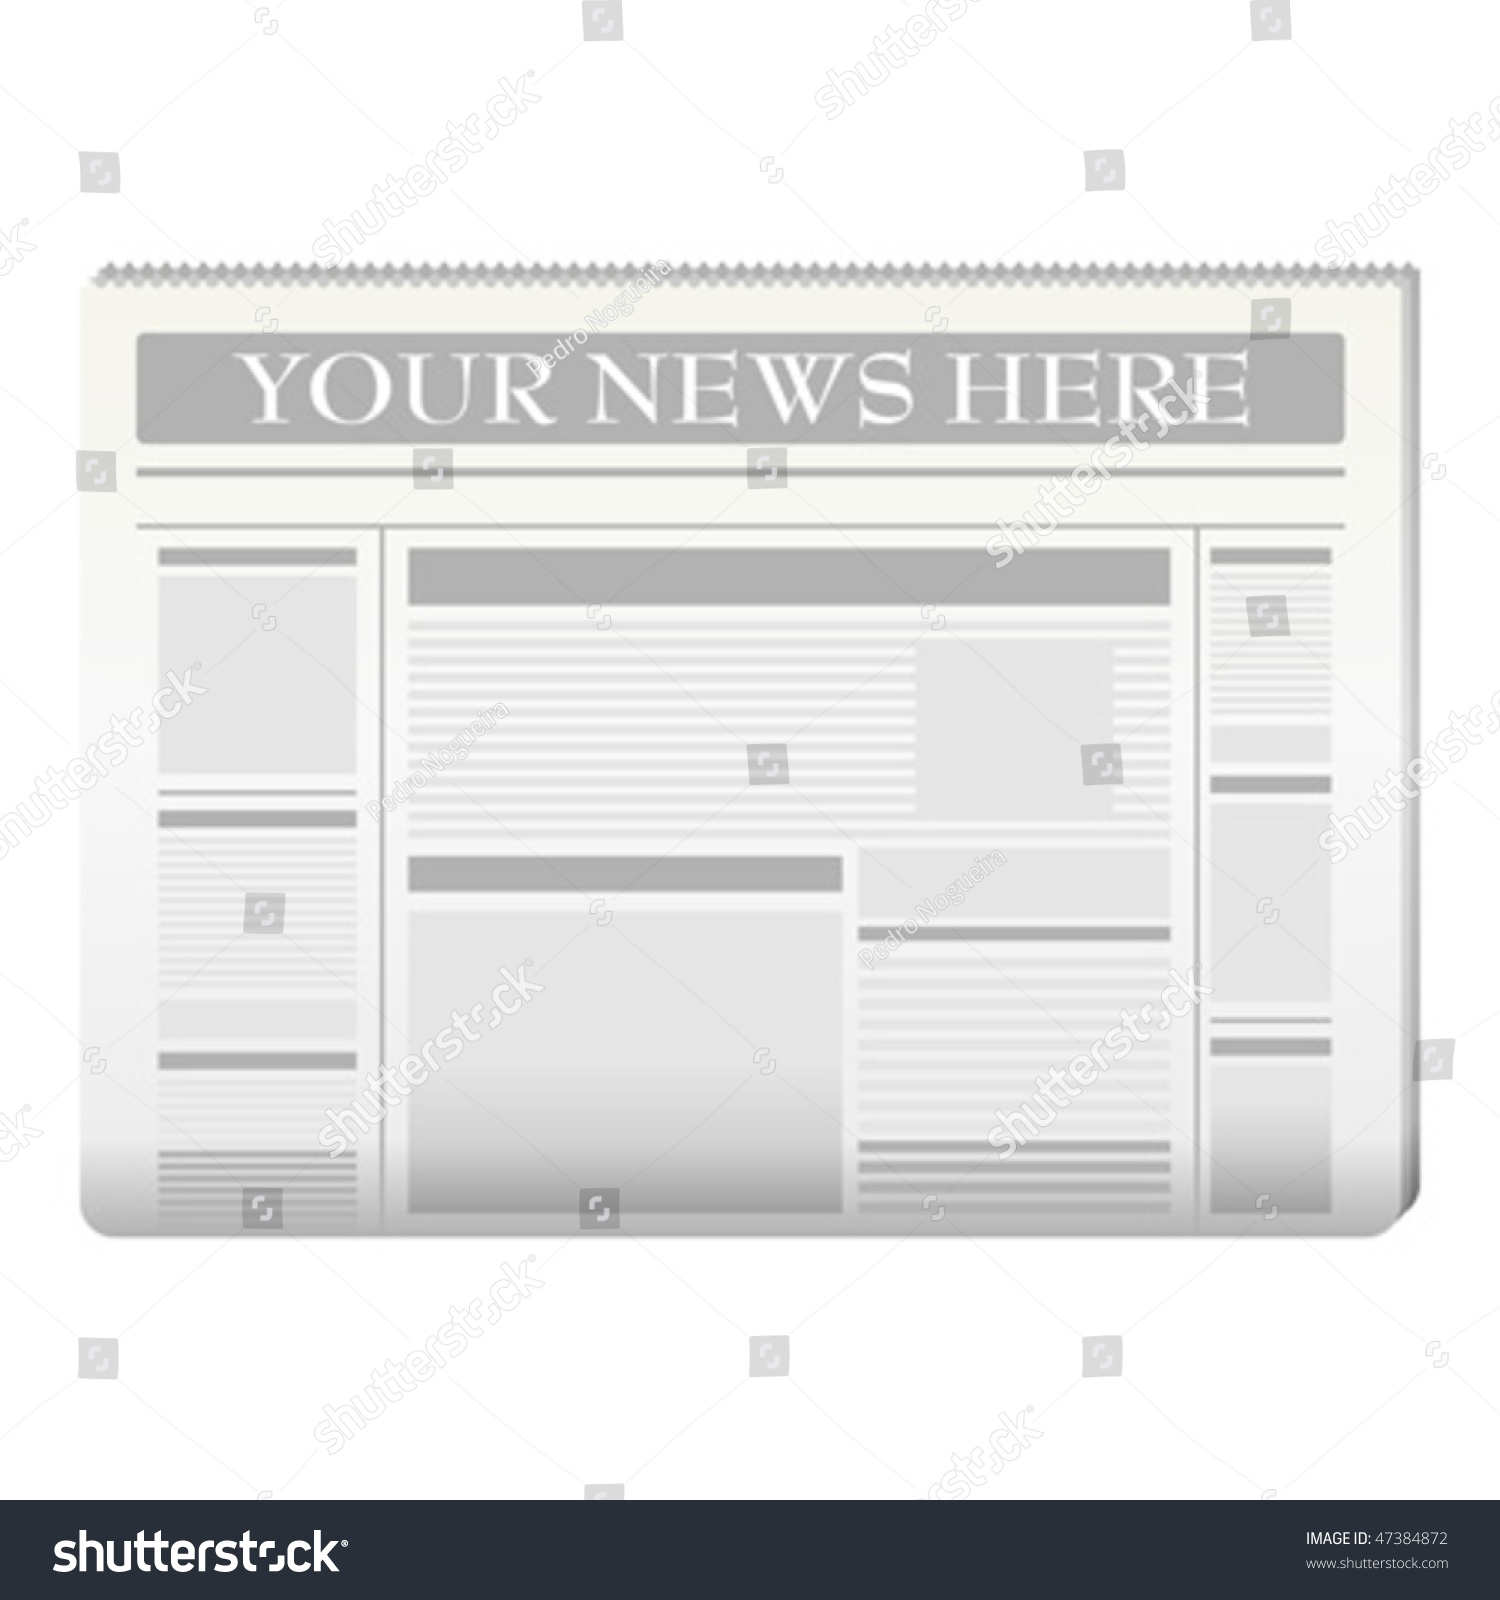 Blank Newspaper Template Extra Extra newspaper front page stock ...